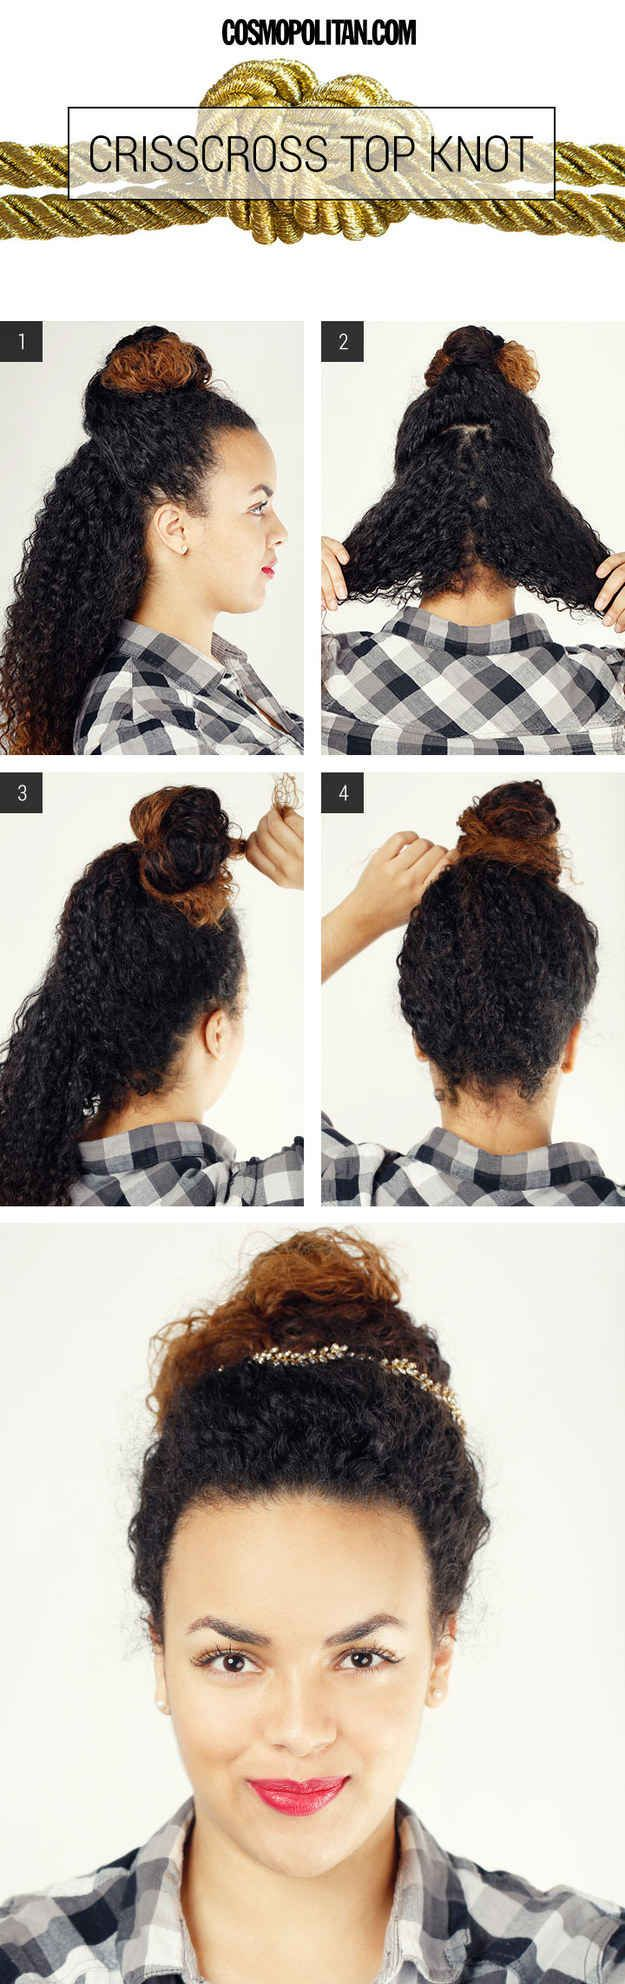 best beauty images on pinterest beauty tips beauty hacks and